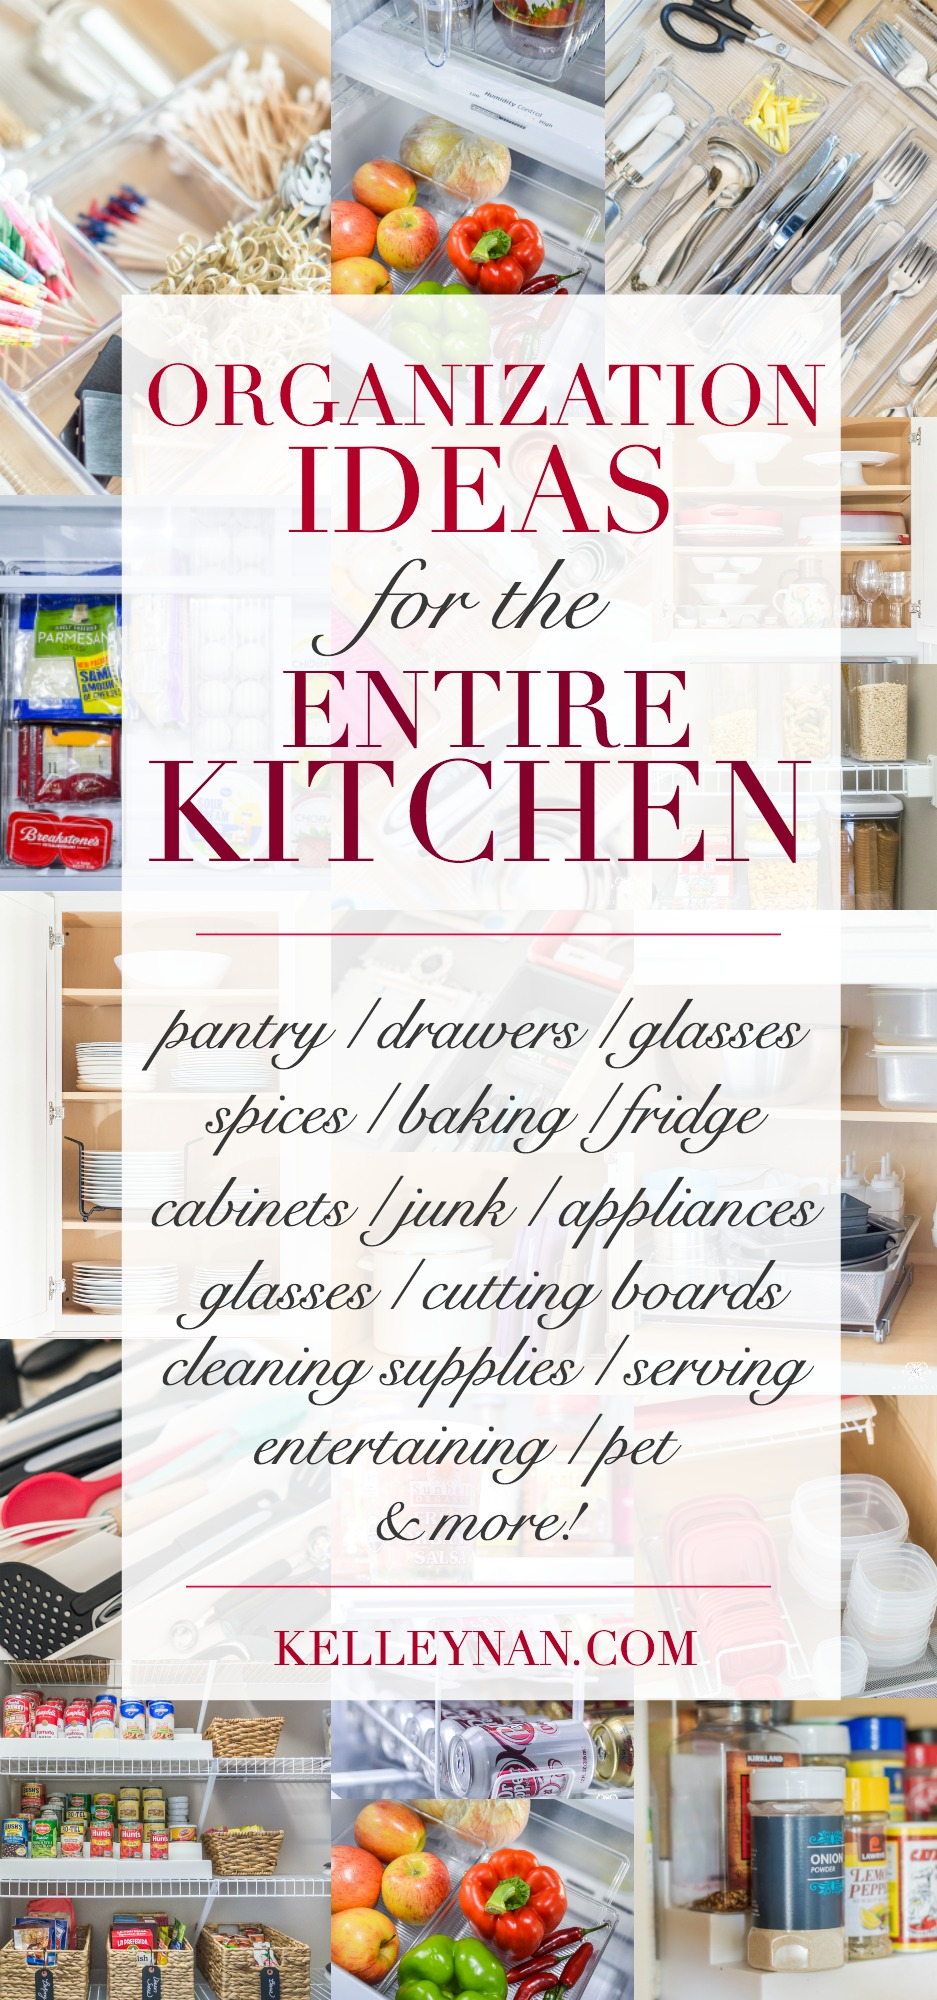 How to organize everything in your kitchen from the pantry to the cabinets and drawers